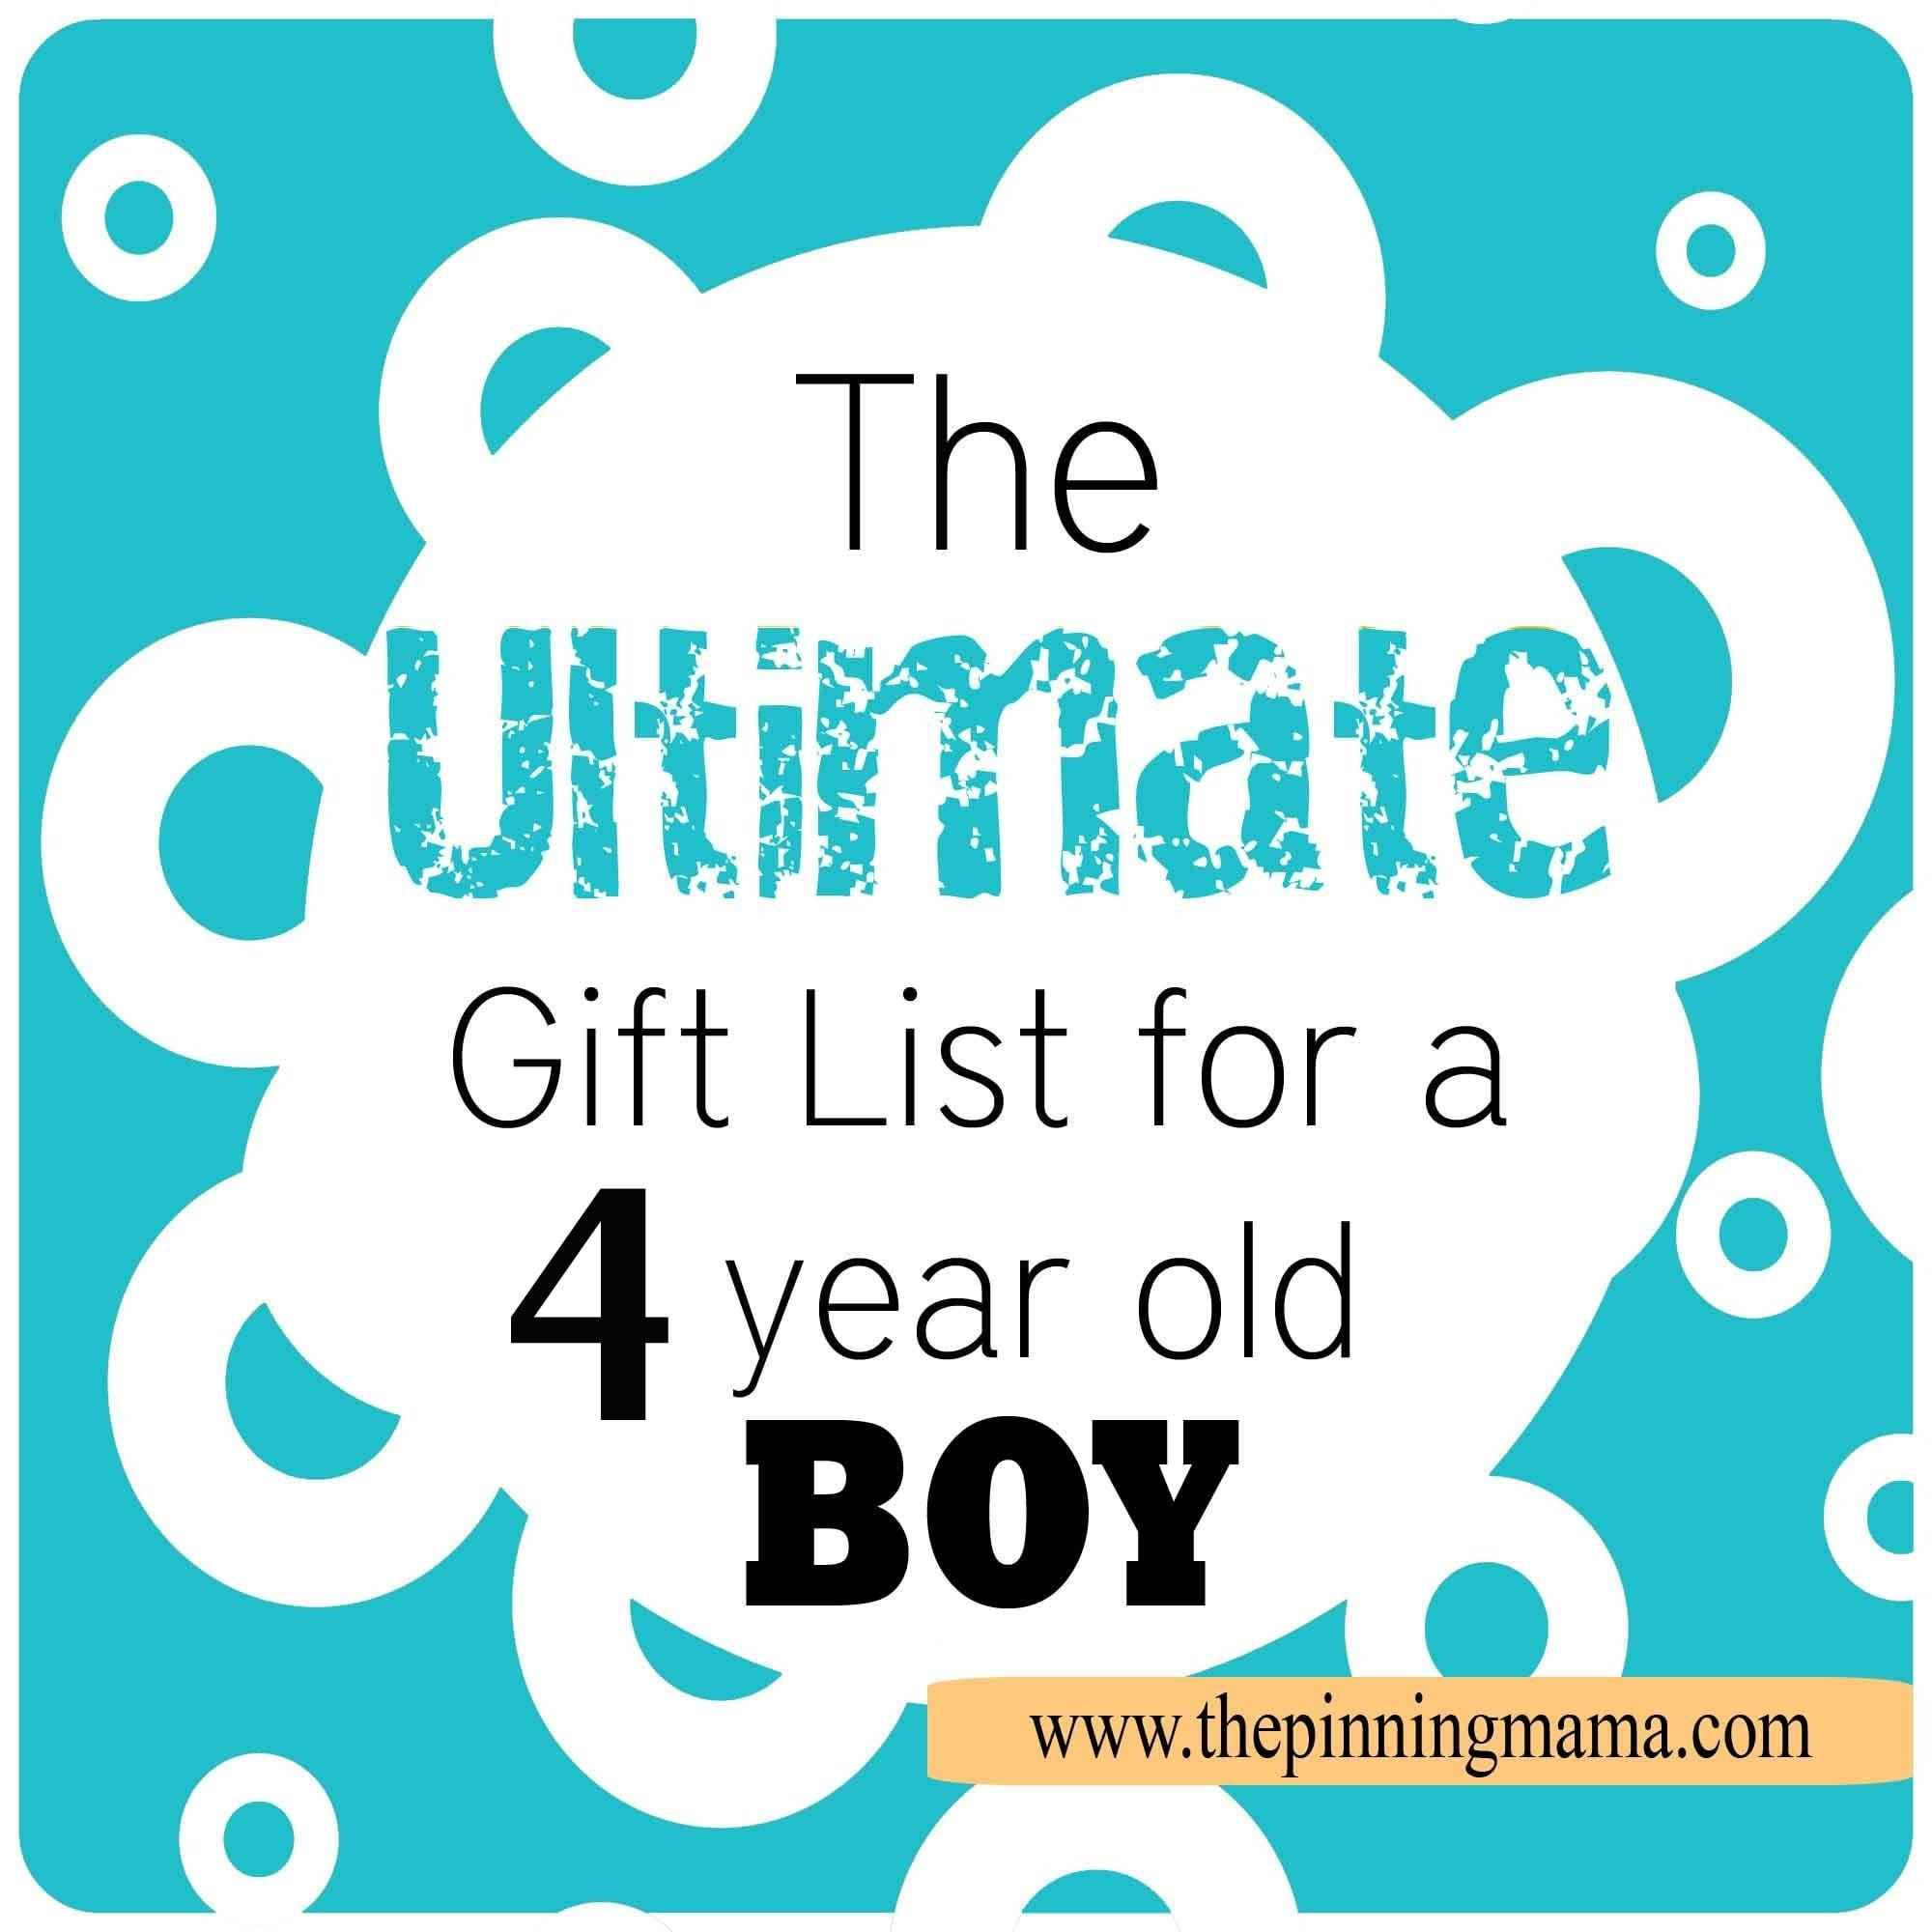 10 Unique Gift Ideas For Four Year Old Boy the best list of gift ideas for a 4 year old boy e280a2 the pinning mama 10 2020